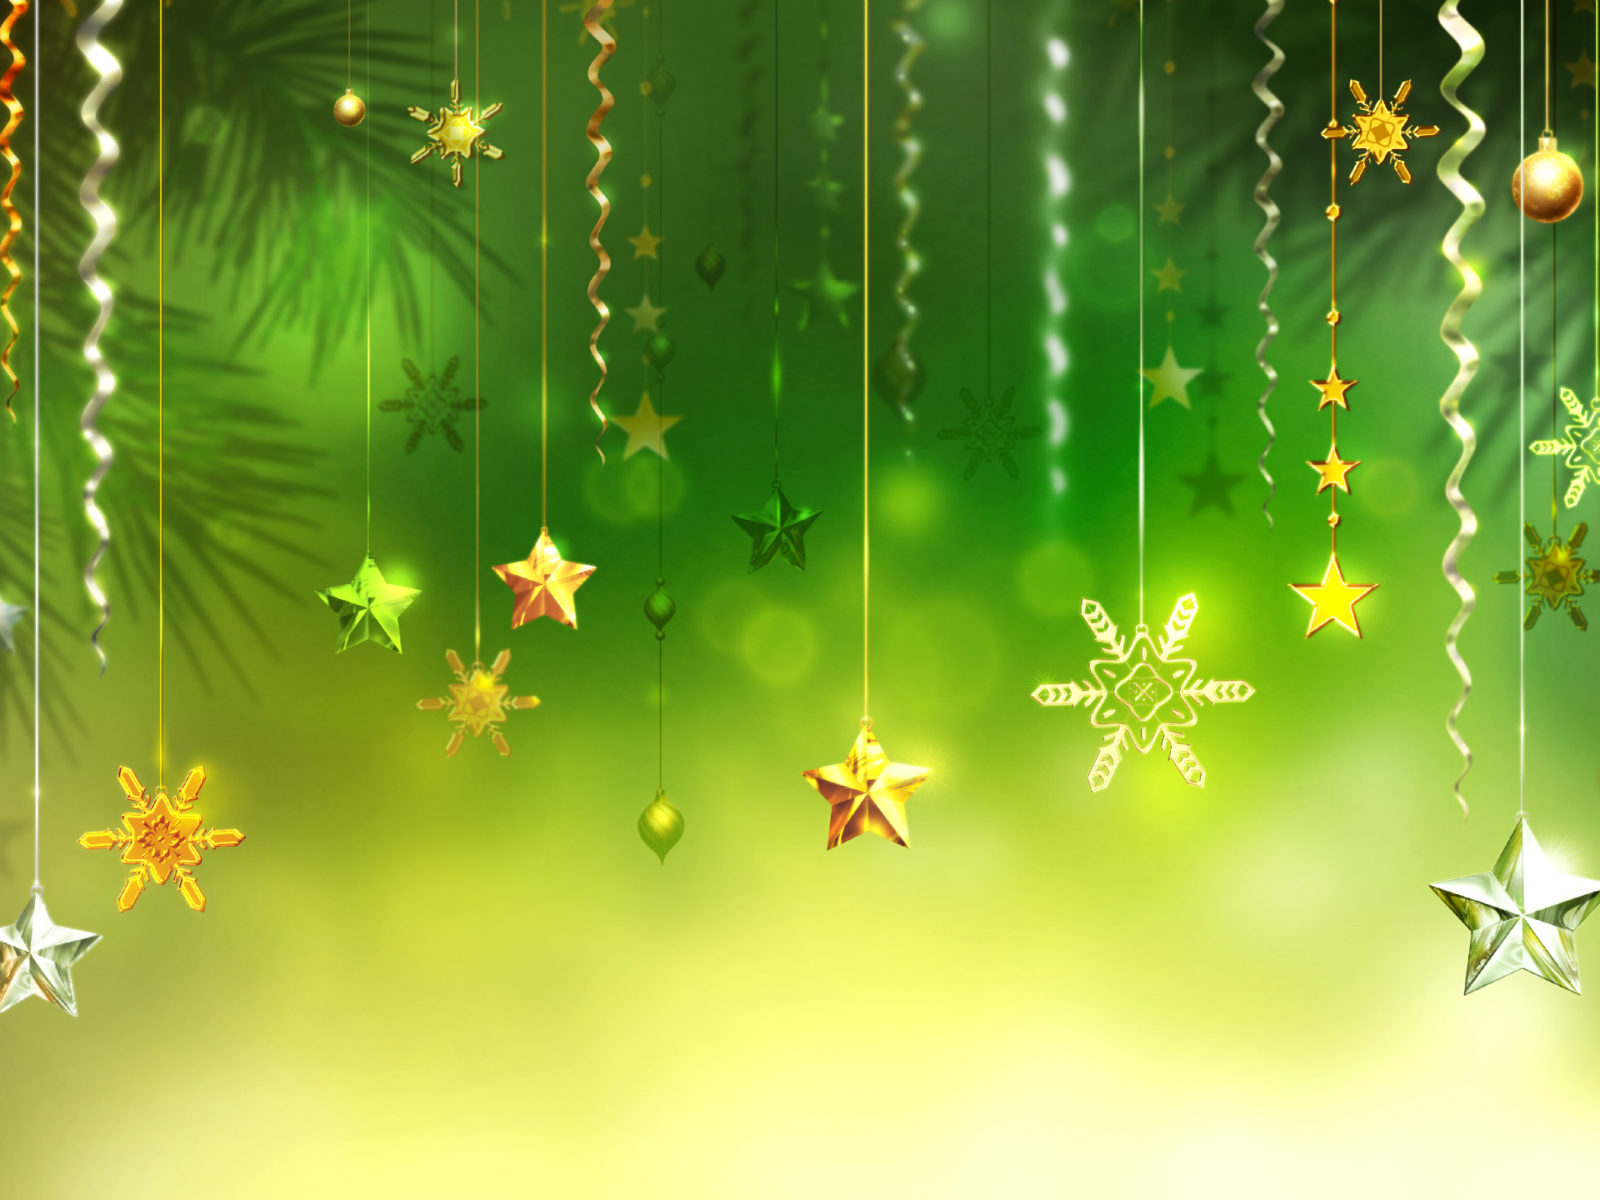 Card Wallpaper Hd Christmas Green Background Stars Snowflakes Decorative